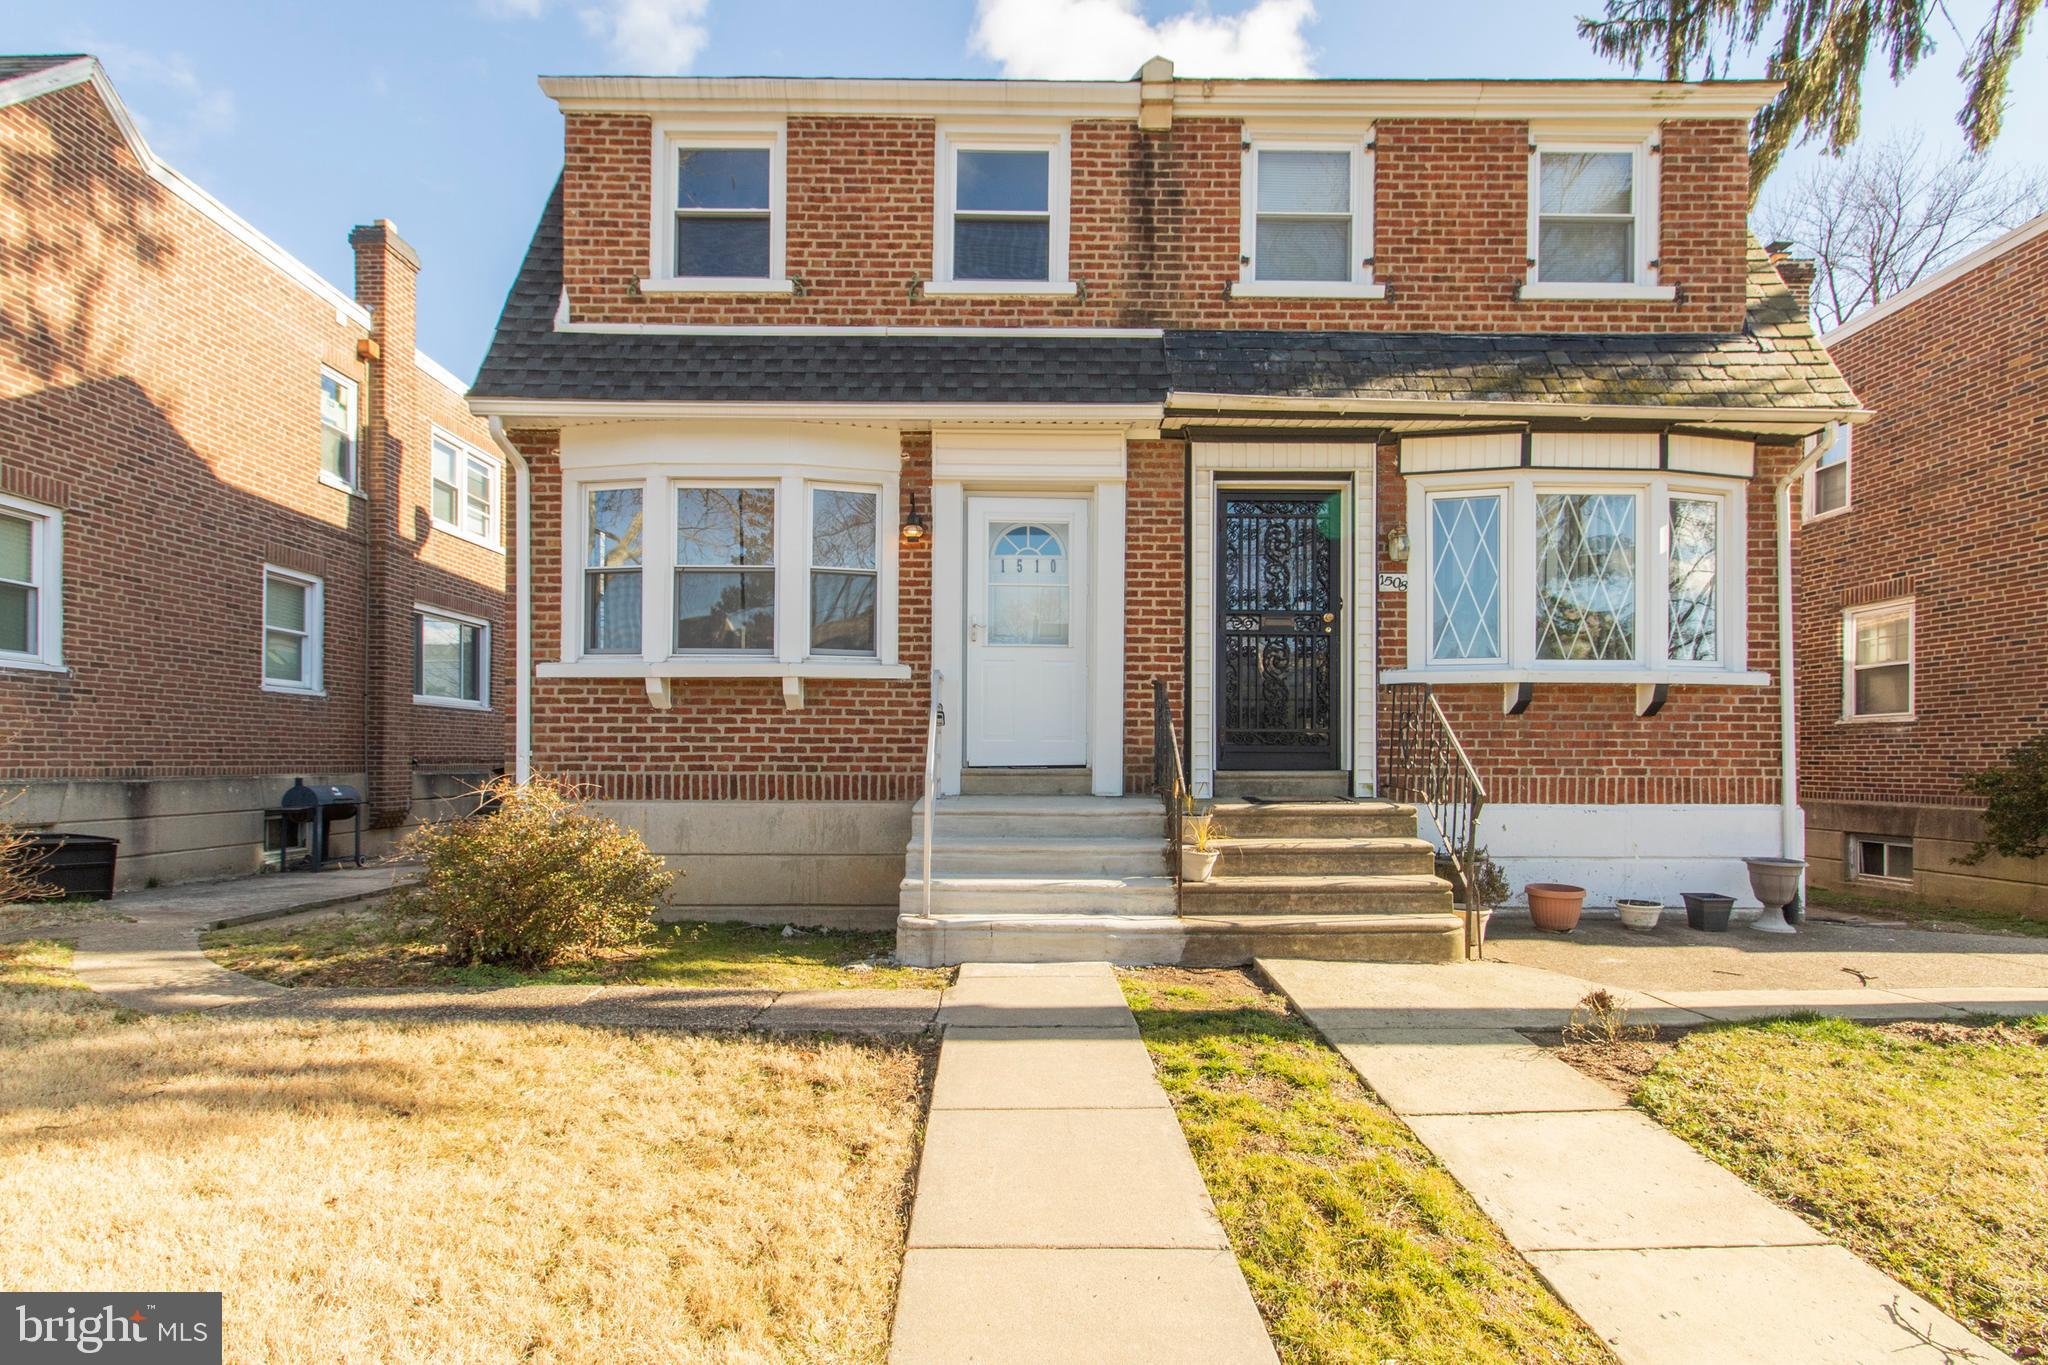 1510 E JOHNSON STREET, PHILADELPHIA, PA 19138